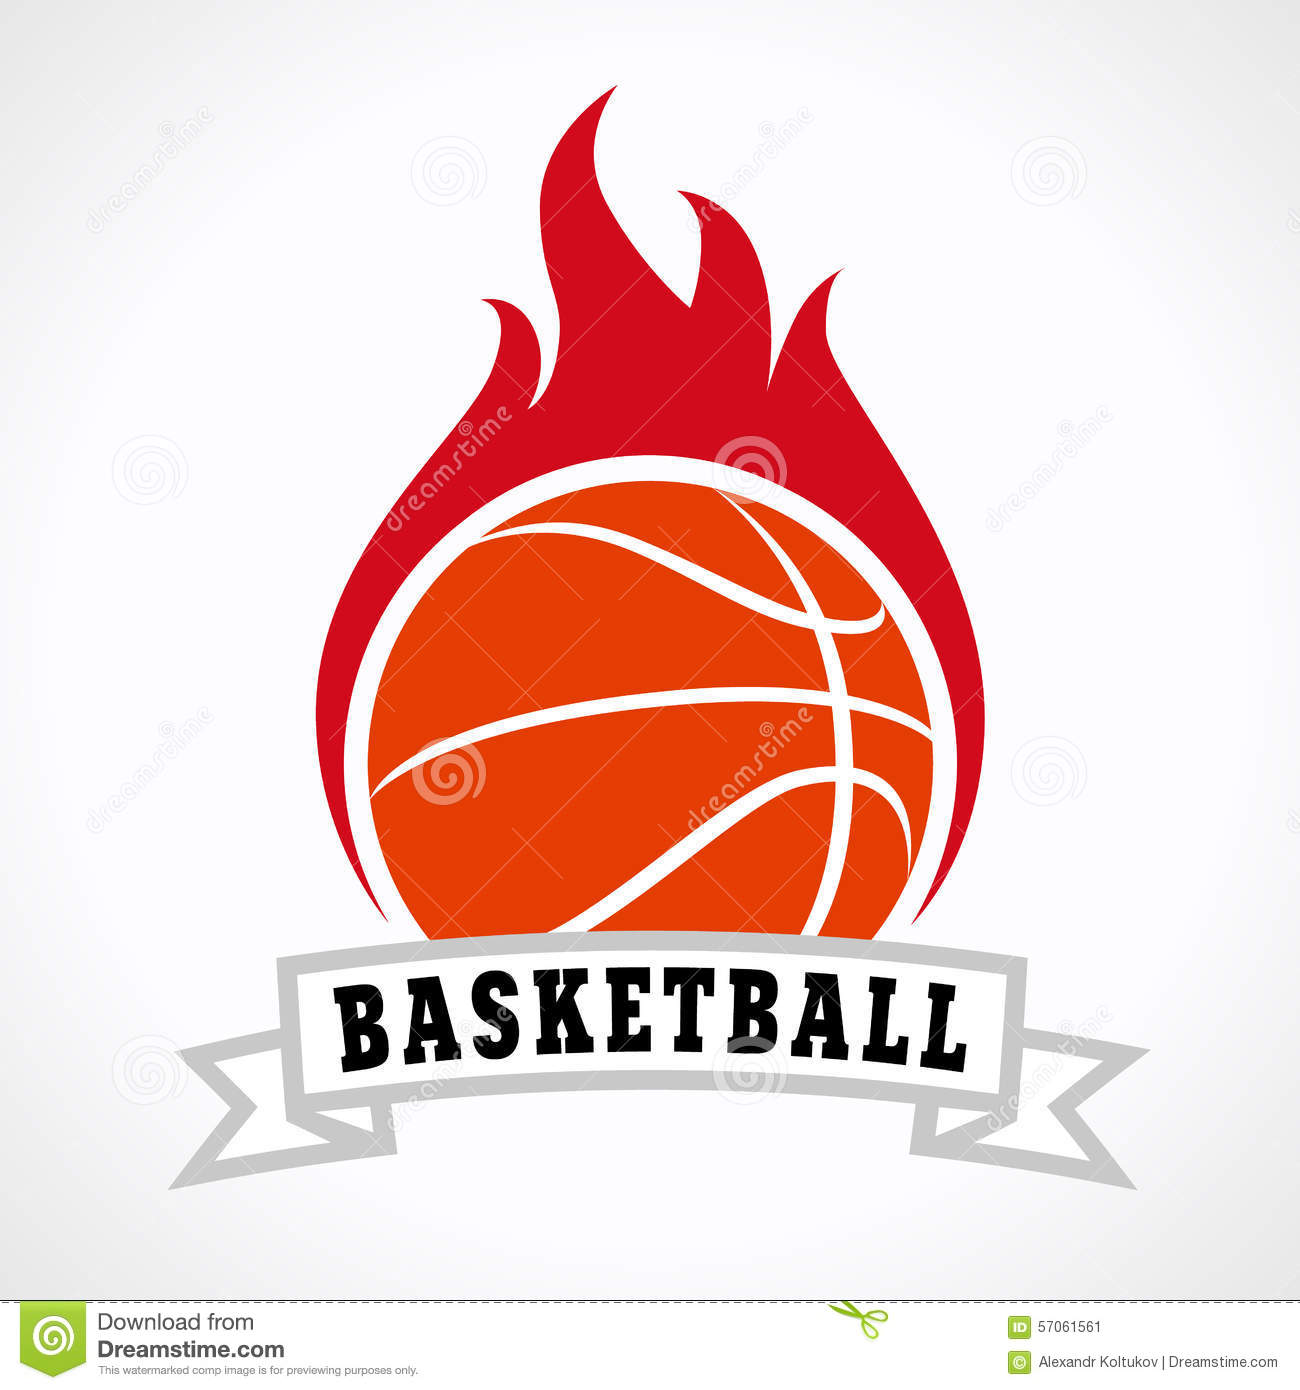 basketball fire logo stock vector image of reward fire 57061561. Black Bedroom Furniture Sets. Home Design Ideas